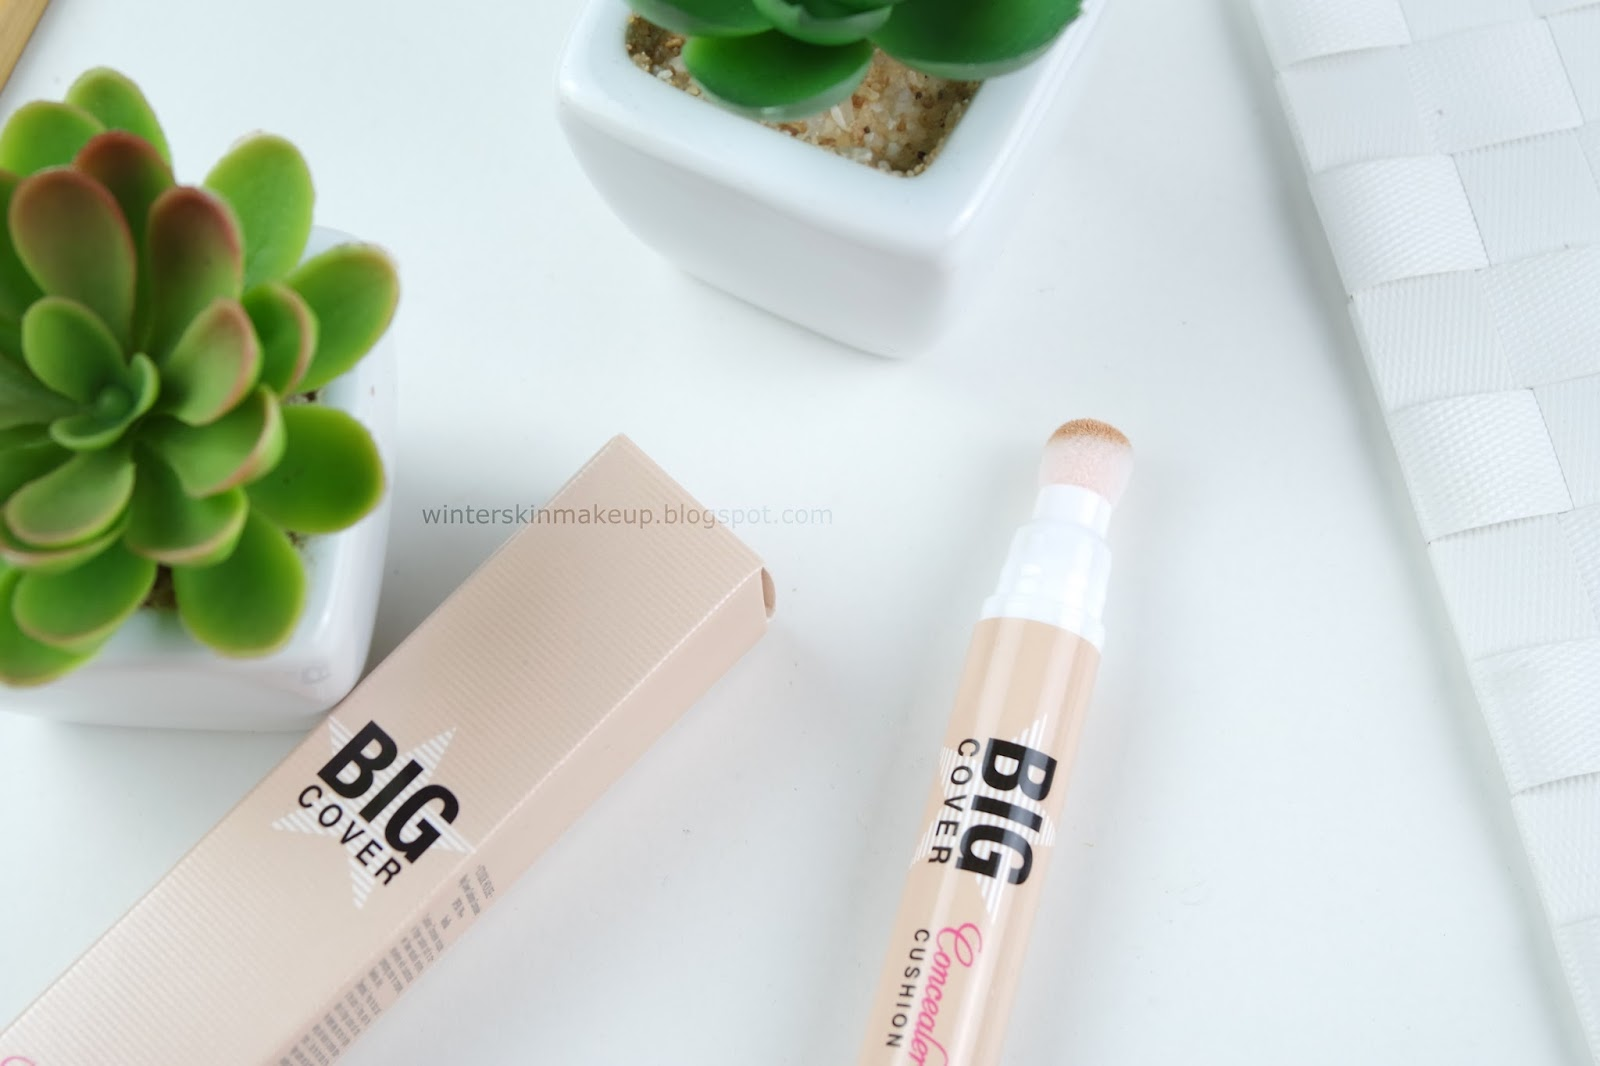 Etude House Big Cover Cushion Concealer